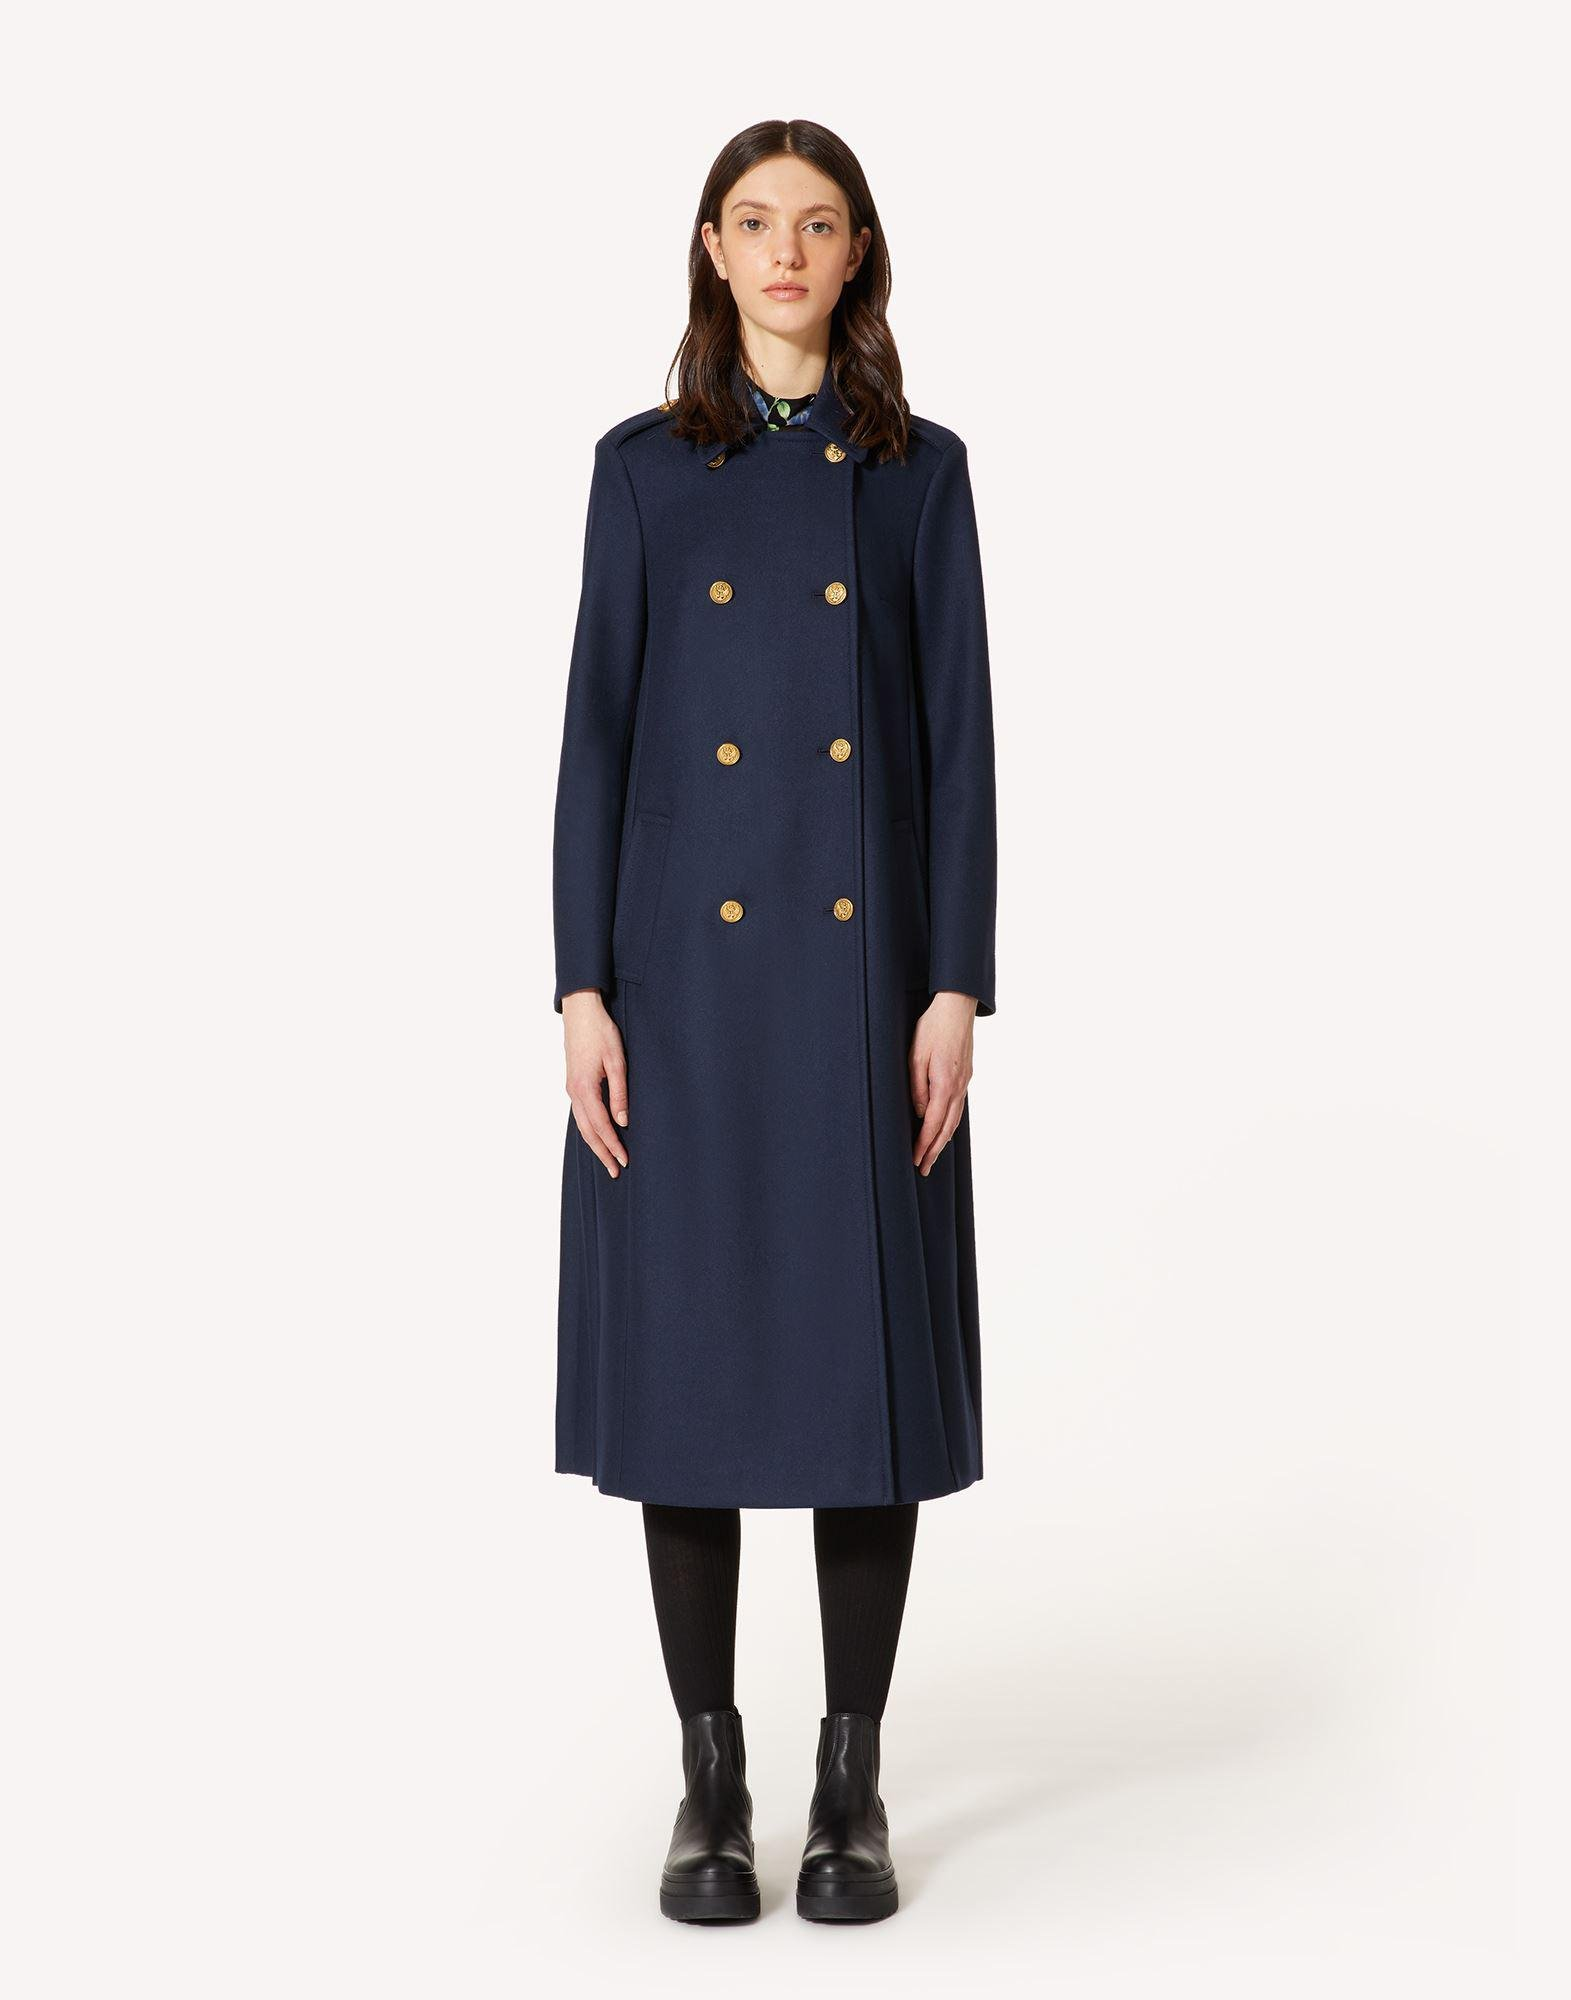 FELT WOOL COAT WITH MARINE BUTTONS